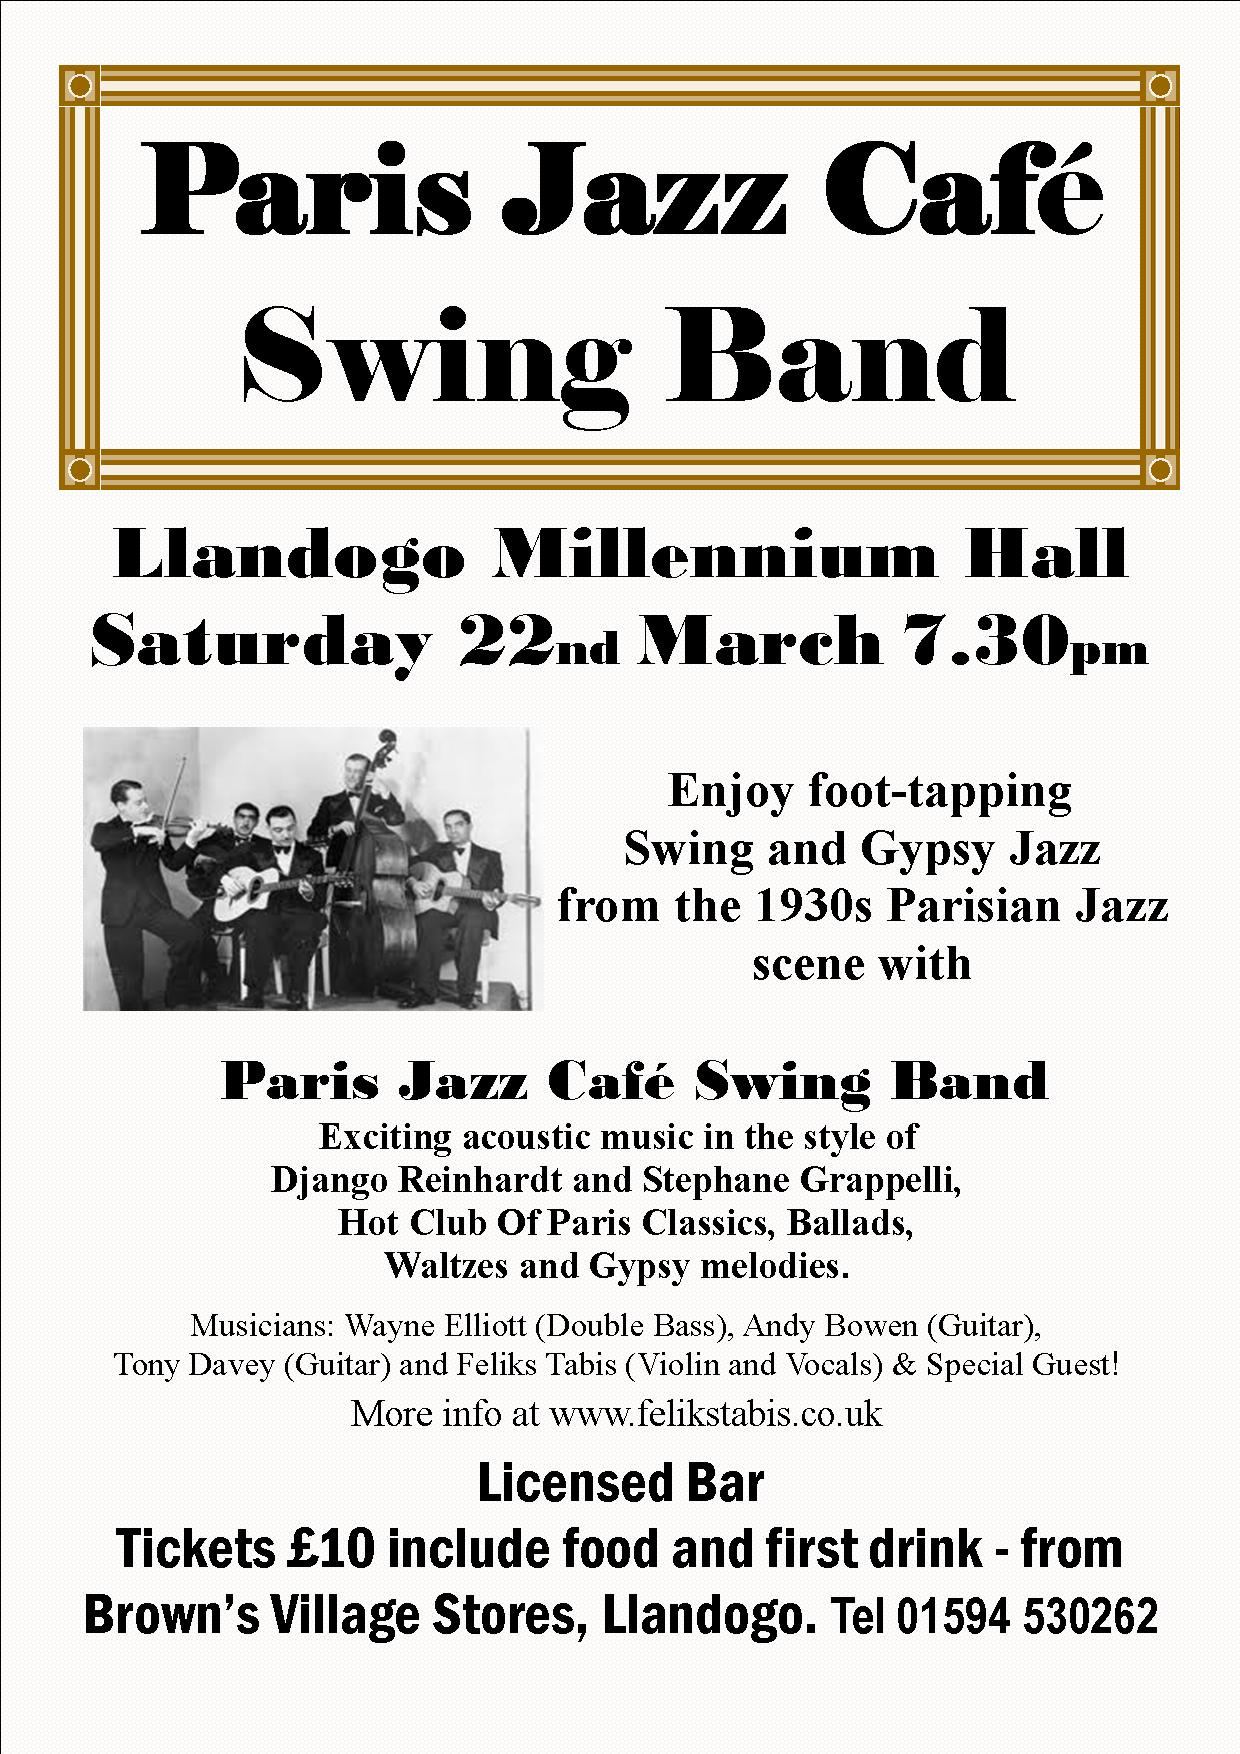 Paris Jazz Cafe Swing Band